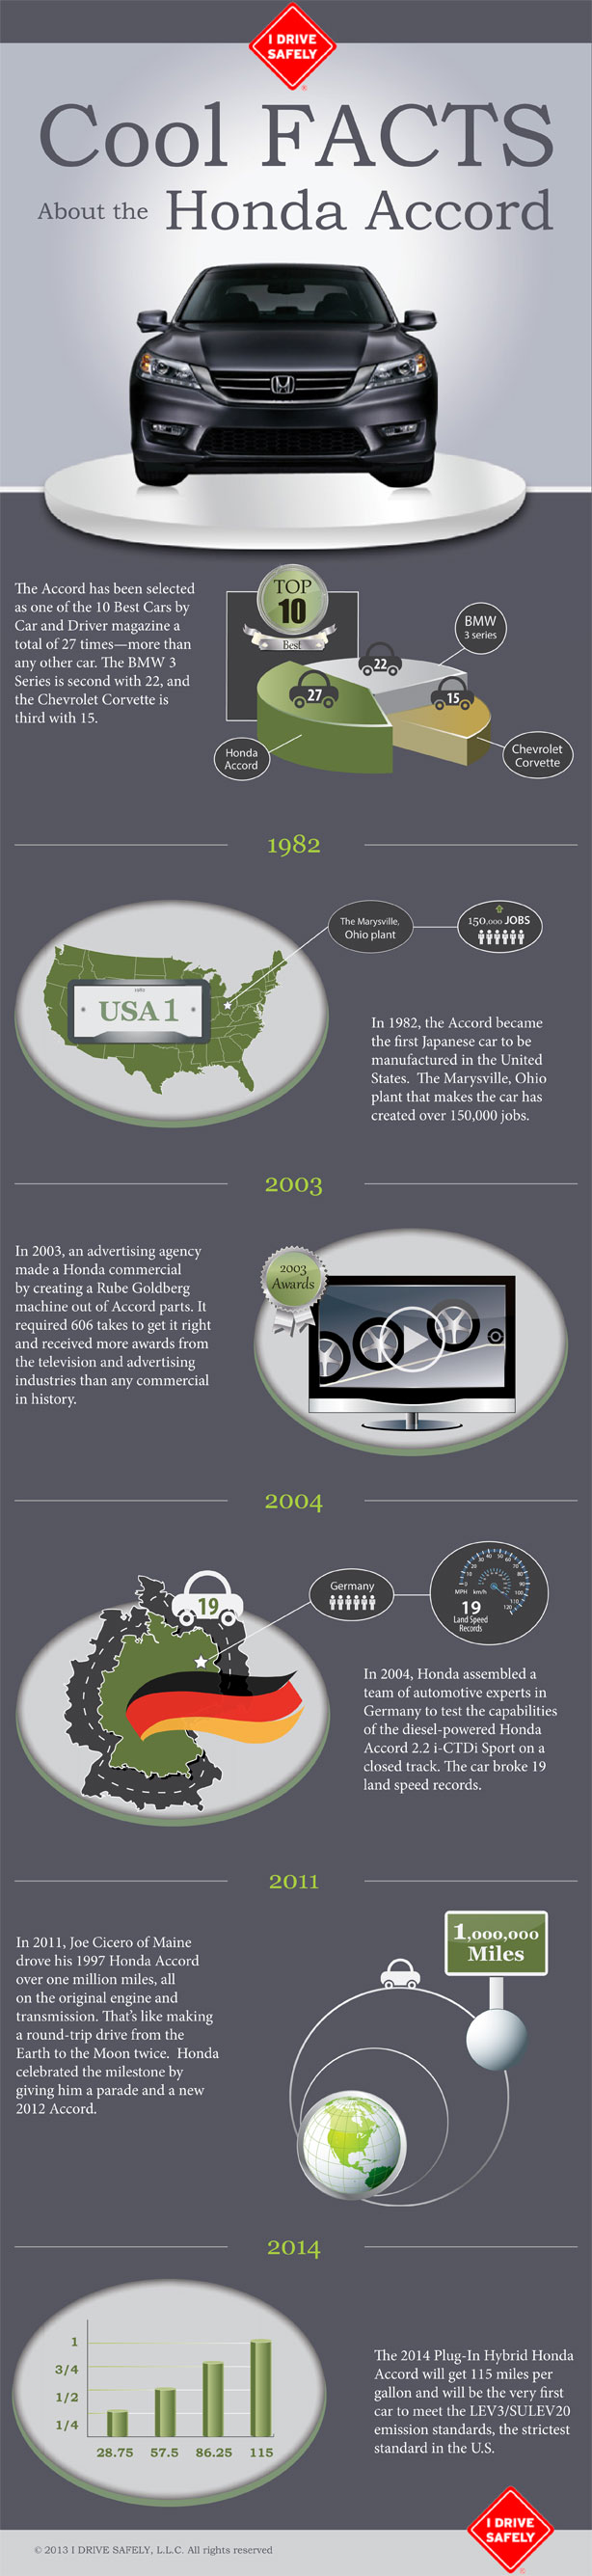 Honda Accord Facts-Infographic